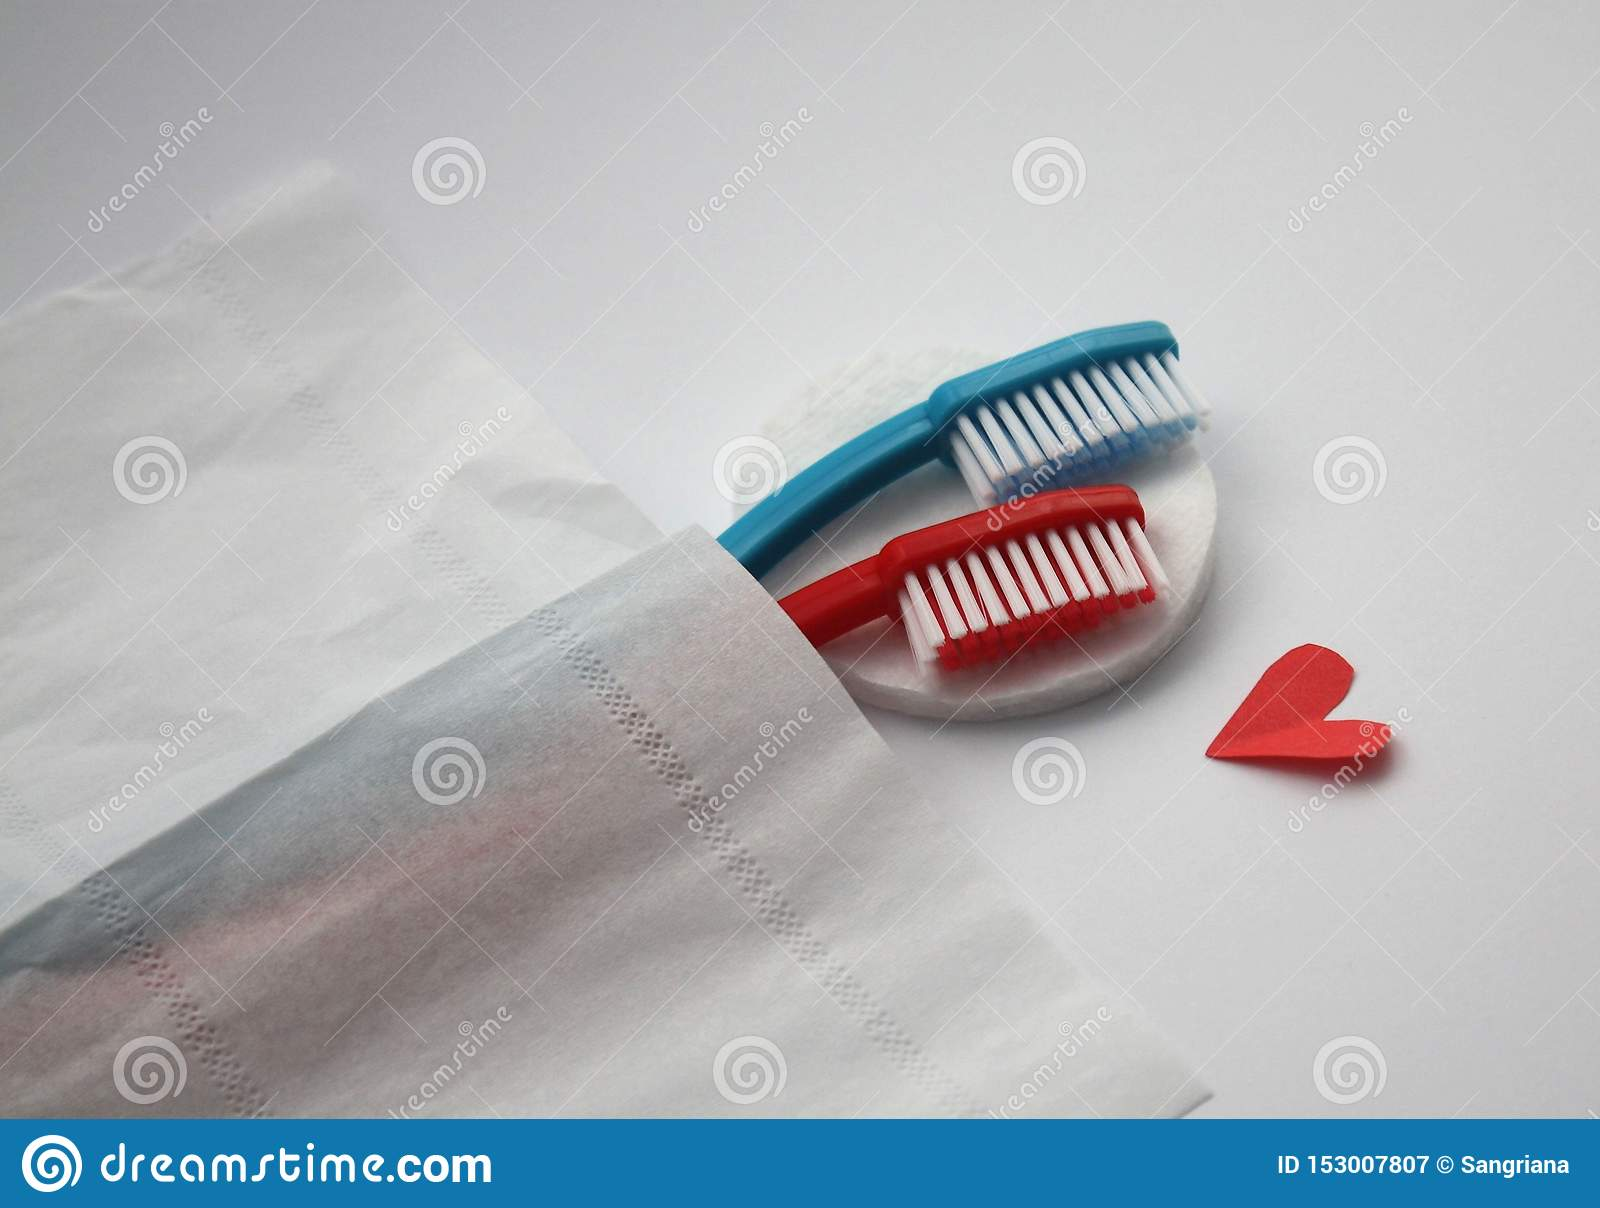 Female and male toothbrushes hugging in bed, visual metaphore of love